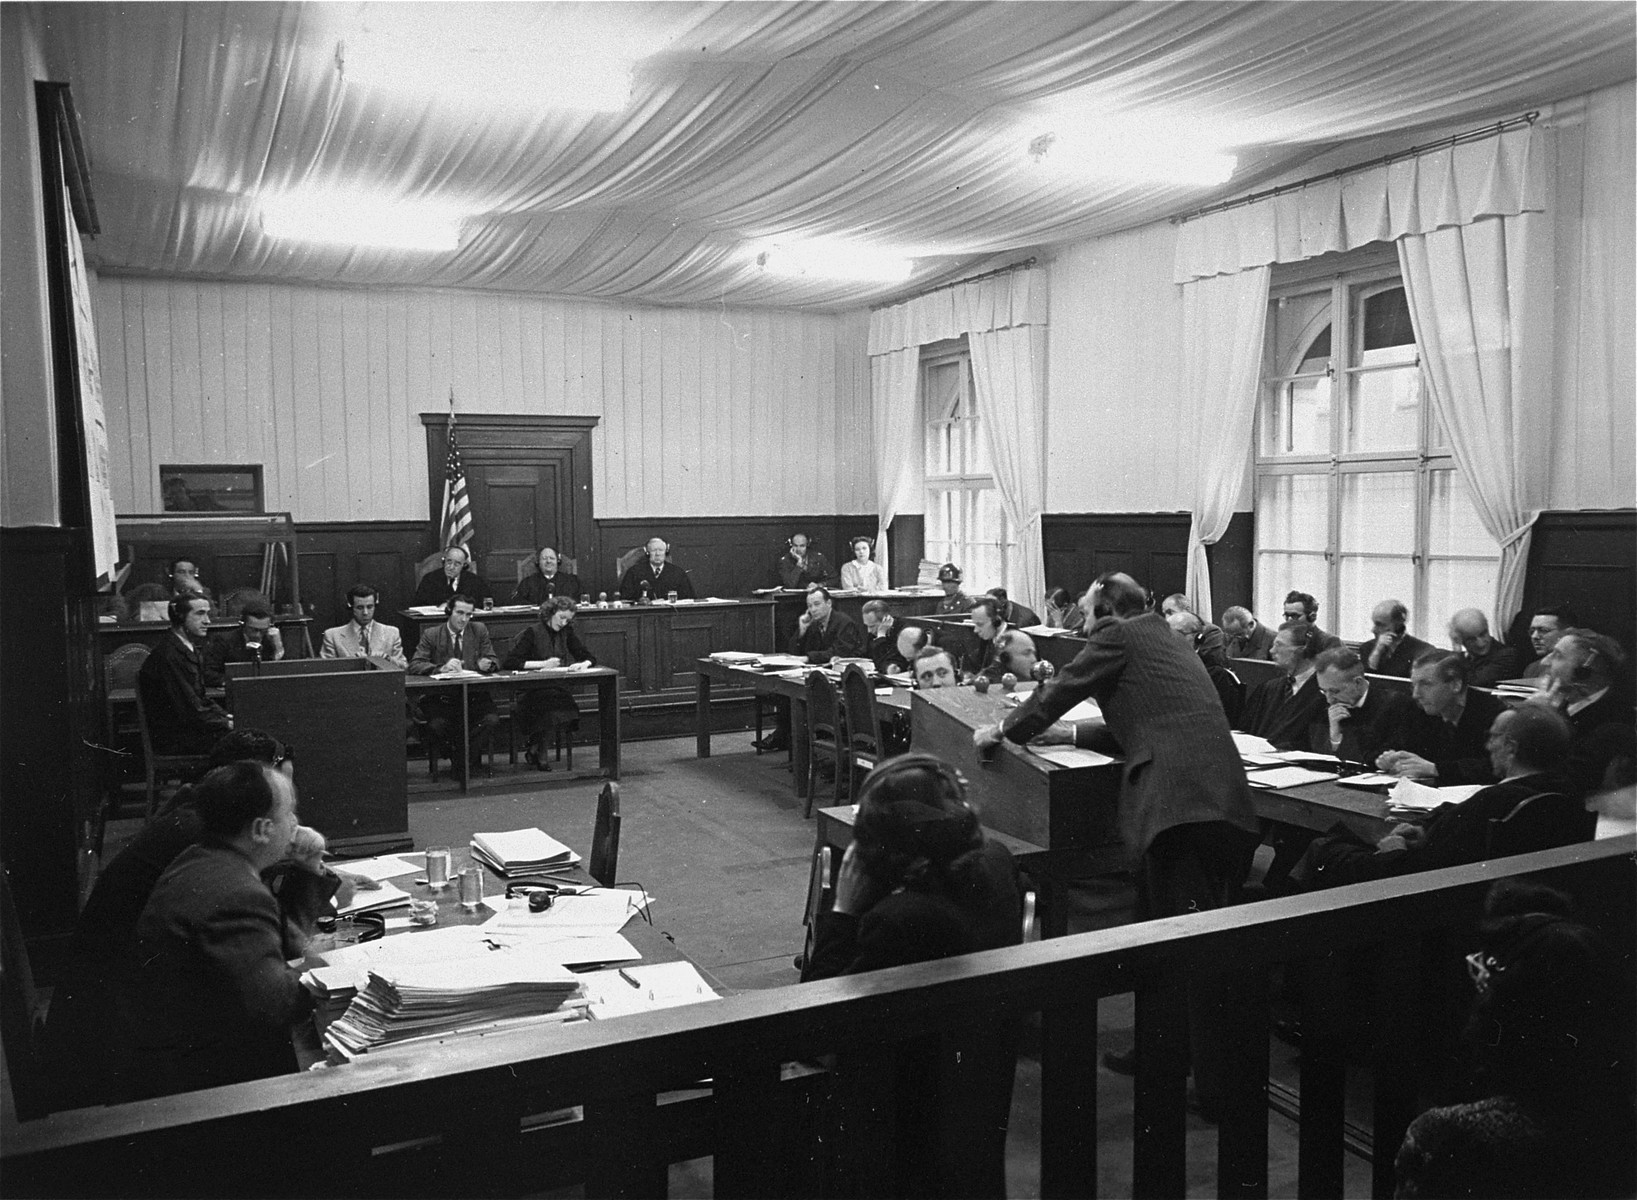 The proceedings of the RuSHA Trial in Courtroom #6 in the Palace of Justice.    In the back sits Military Tribunal I, to the right is the defendants' dock, and in front are the lawyers.  Sitting below the middle judge of the Tribunal is Vivien Putty Spitz, a court reporterr.